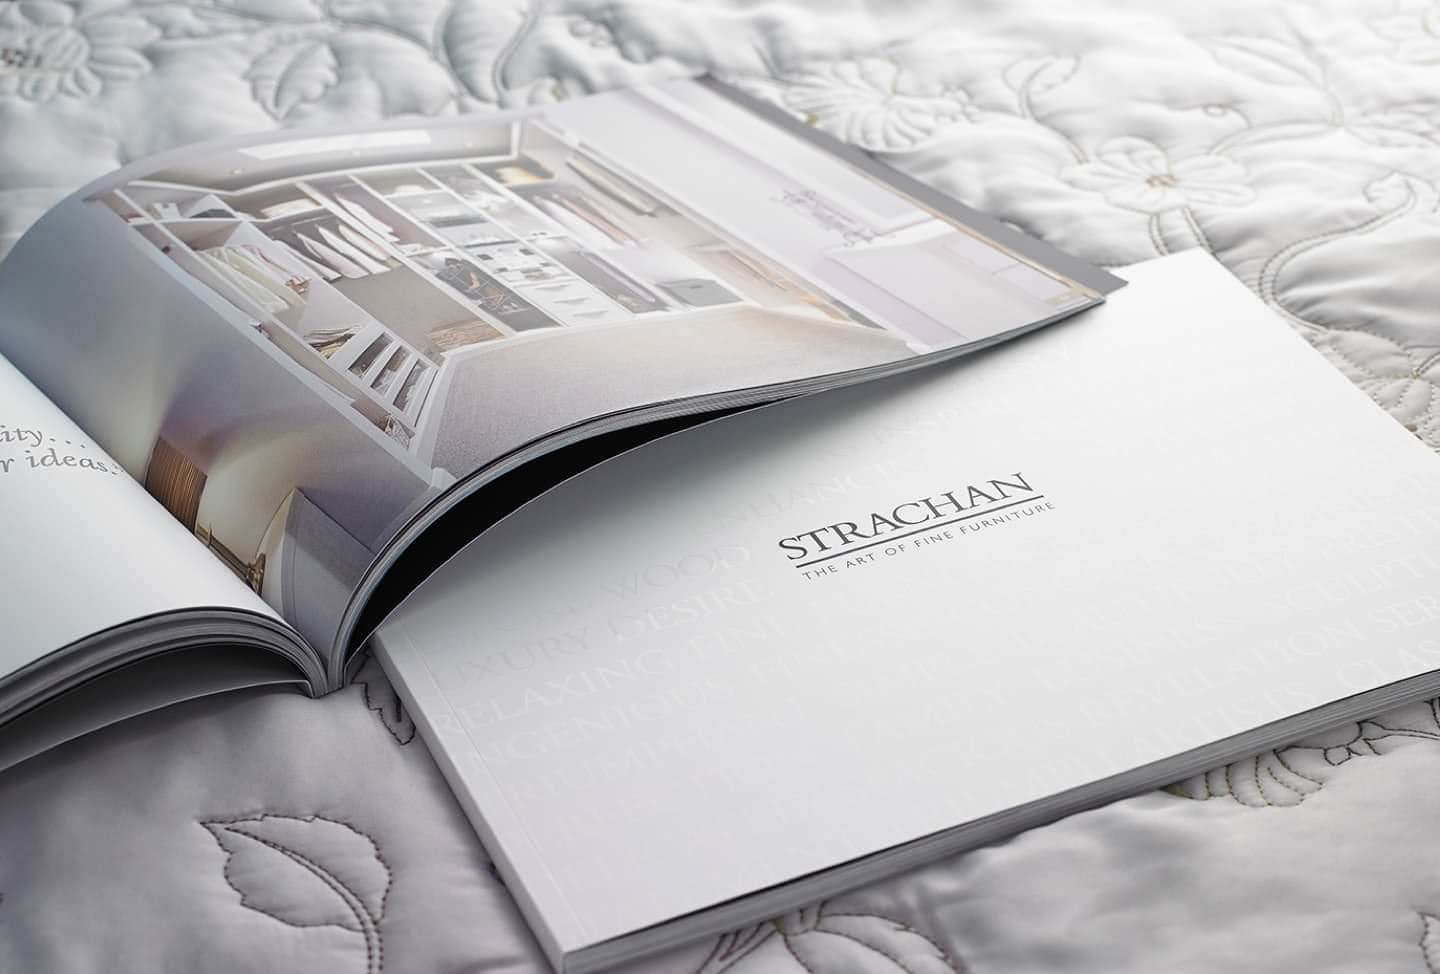 Request a new Strachan brochure